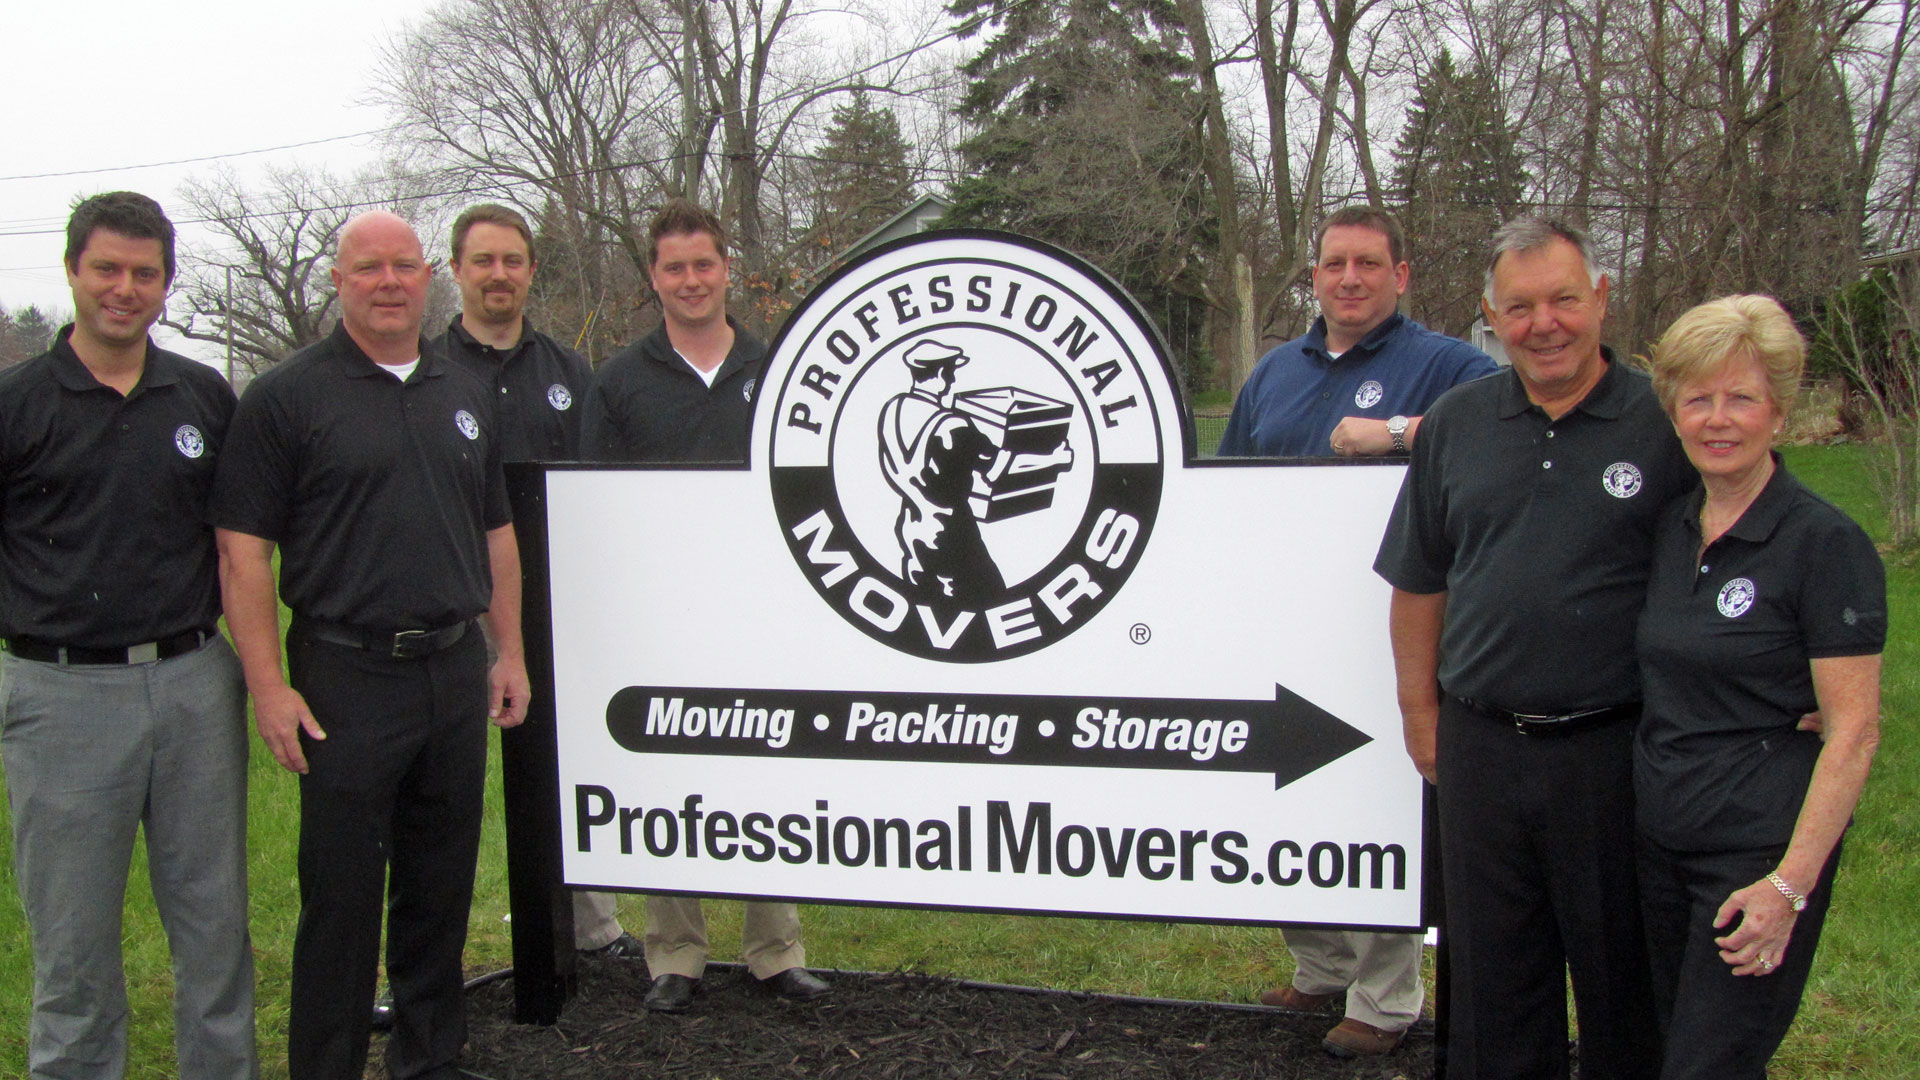 Professional Movers.com Walled Lake Location Group Photo